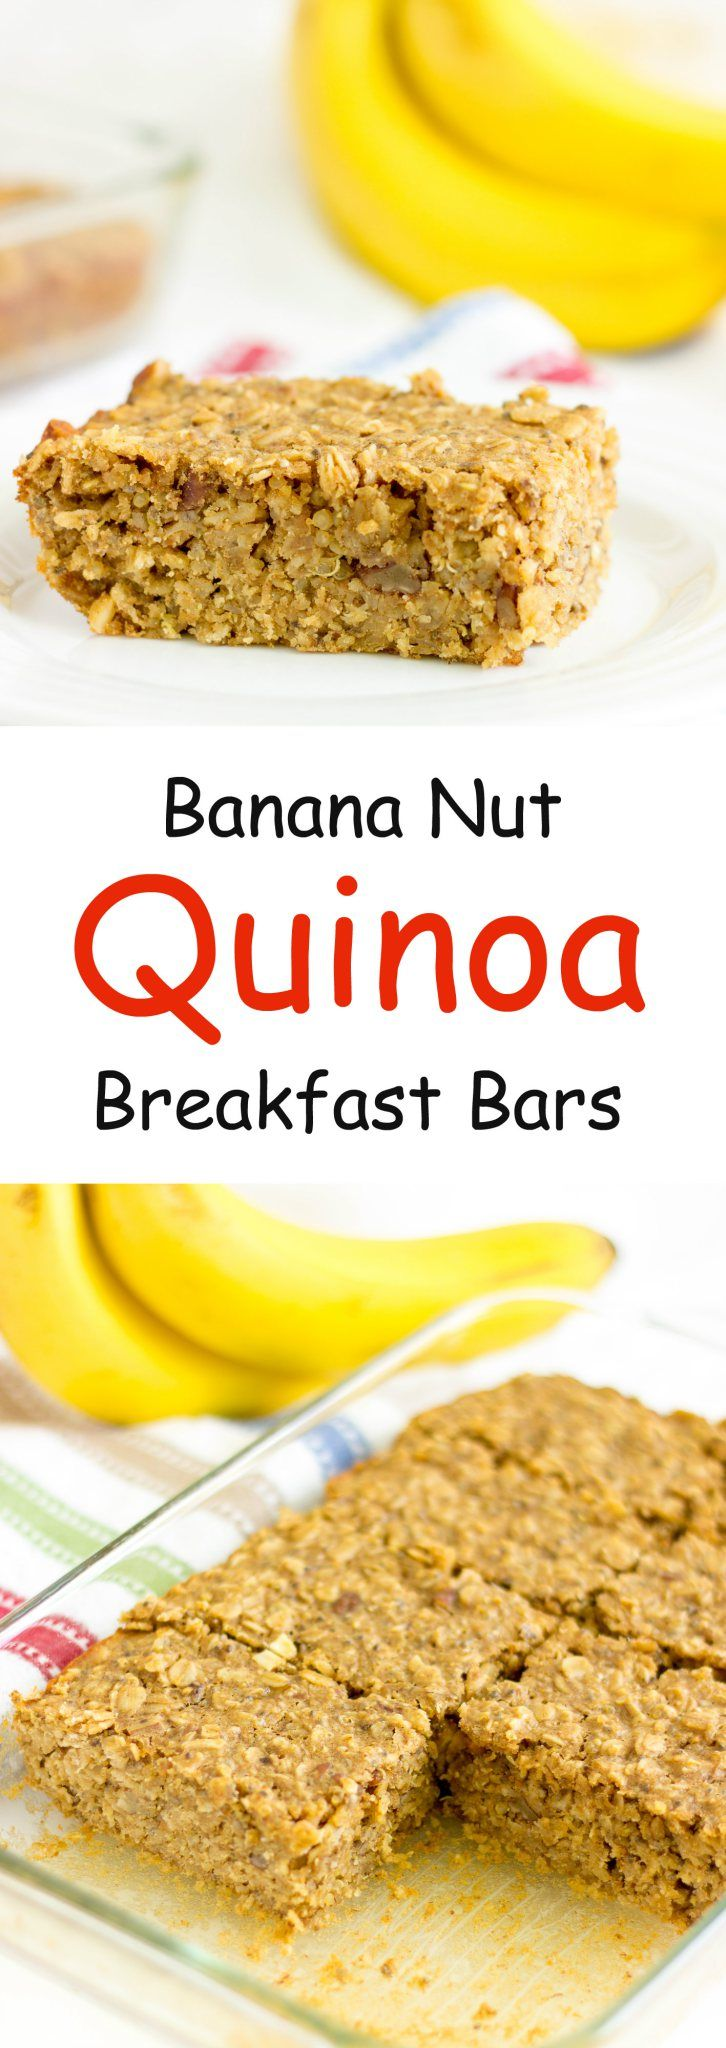 Banana Nut Quinoa Bars - Full of healthy fats, fiber, and protein. These are a great http://papasteves.com/blogs/news